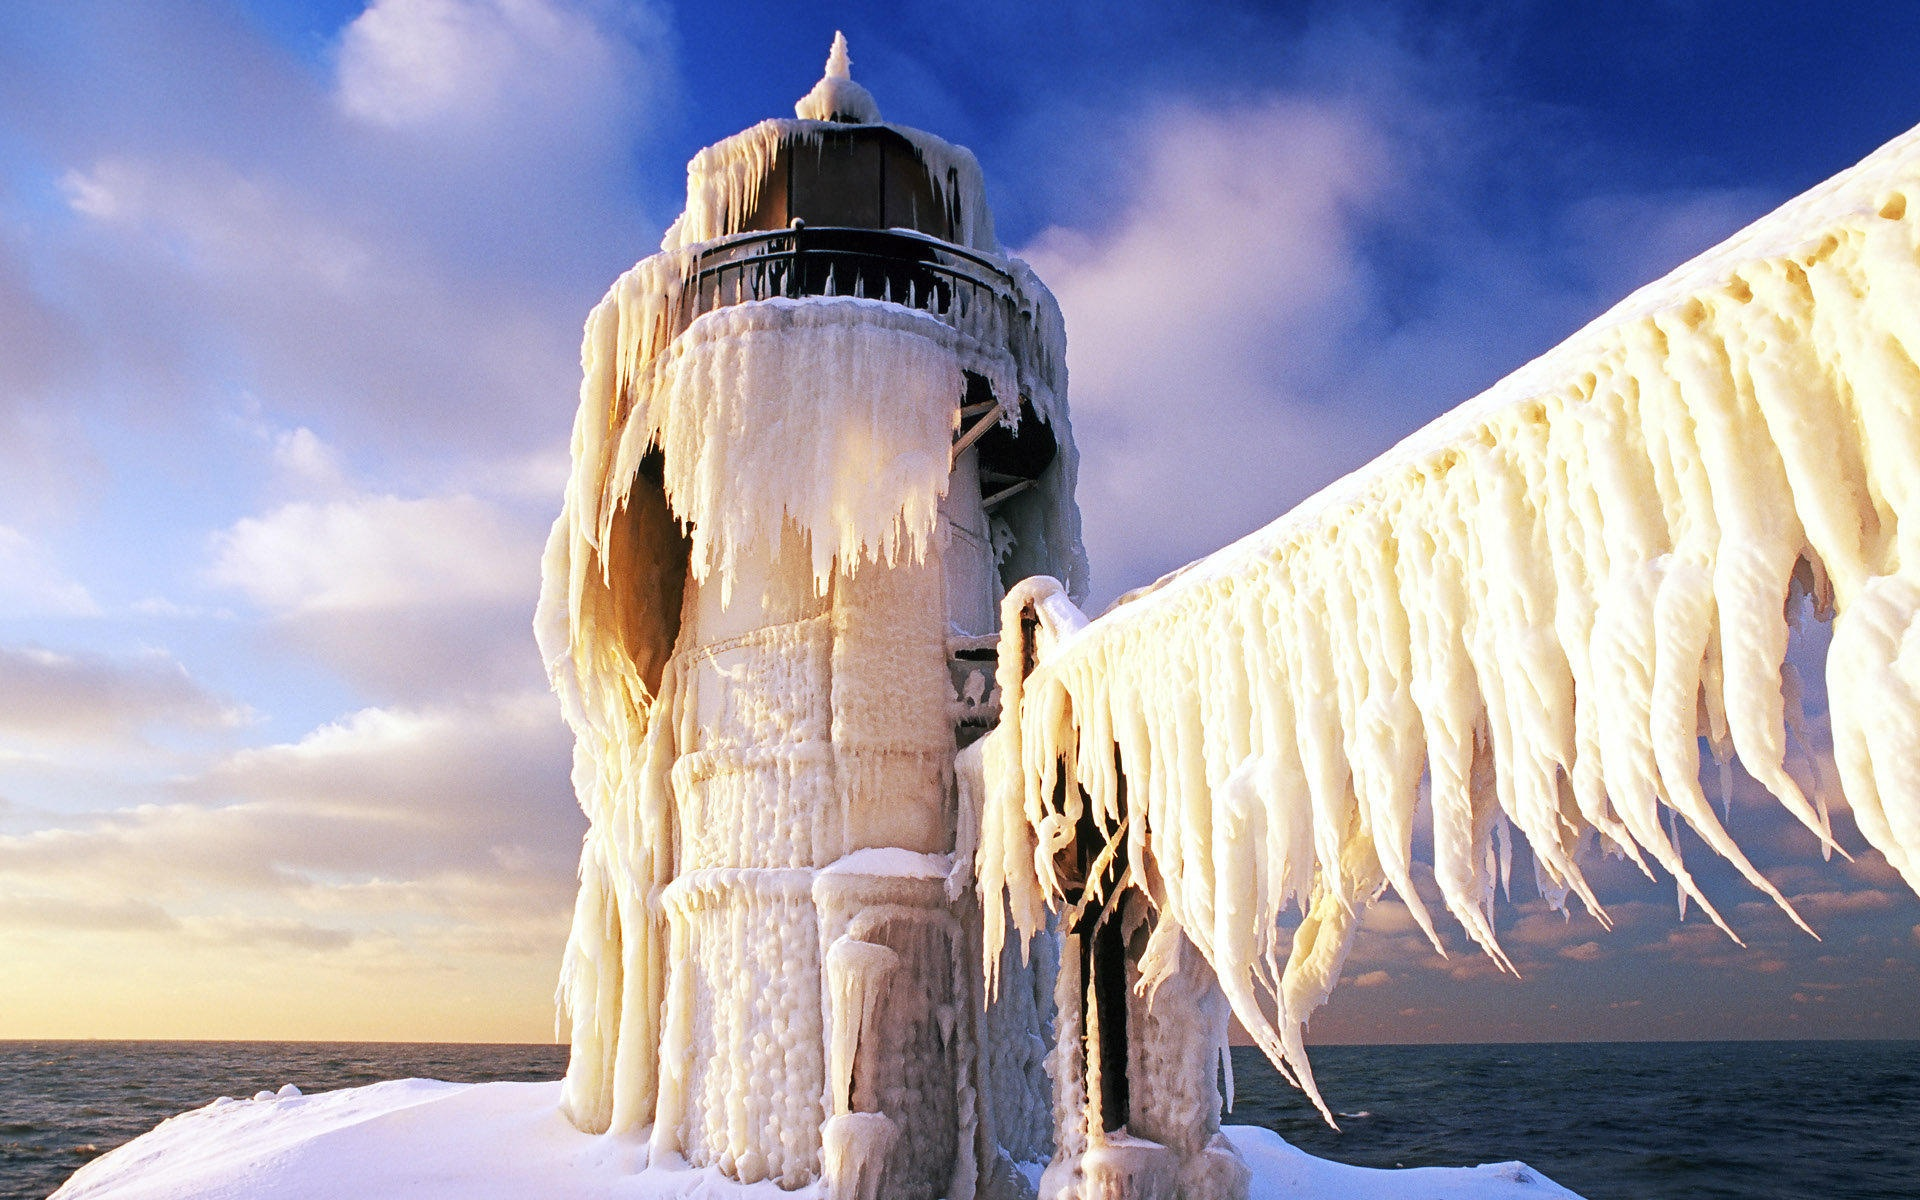 Cute Iphone 5c Wallpapers Wallpaper Frozen Lighthouse 1920x1200 Hd Picture Image